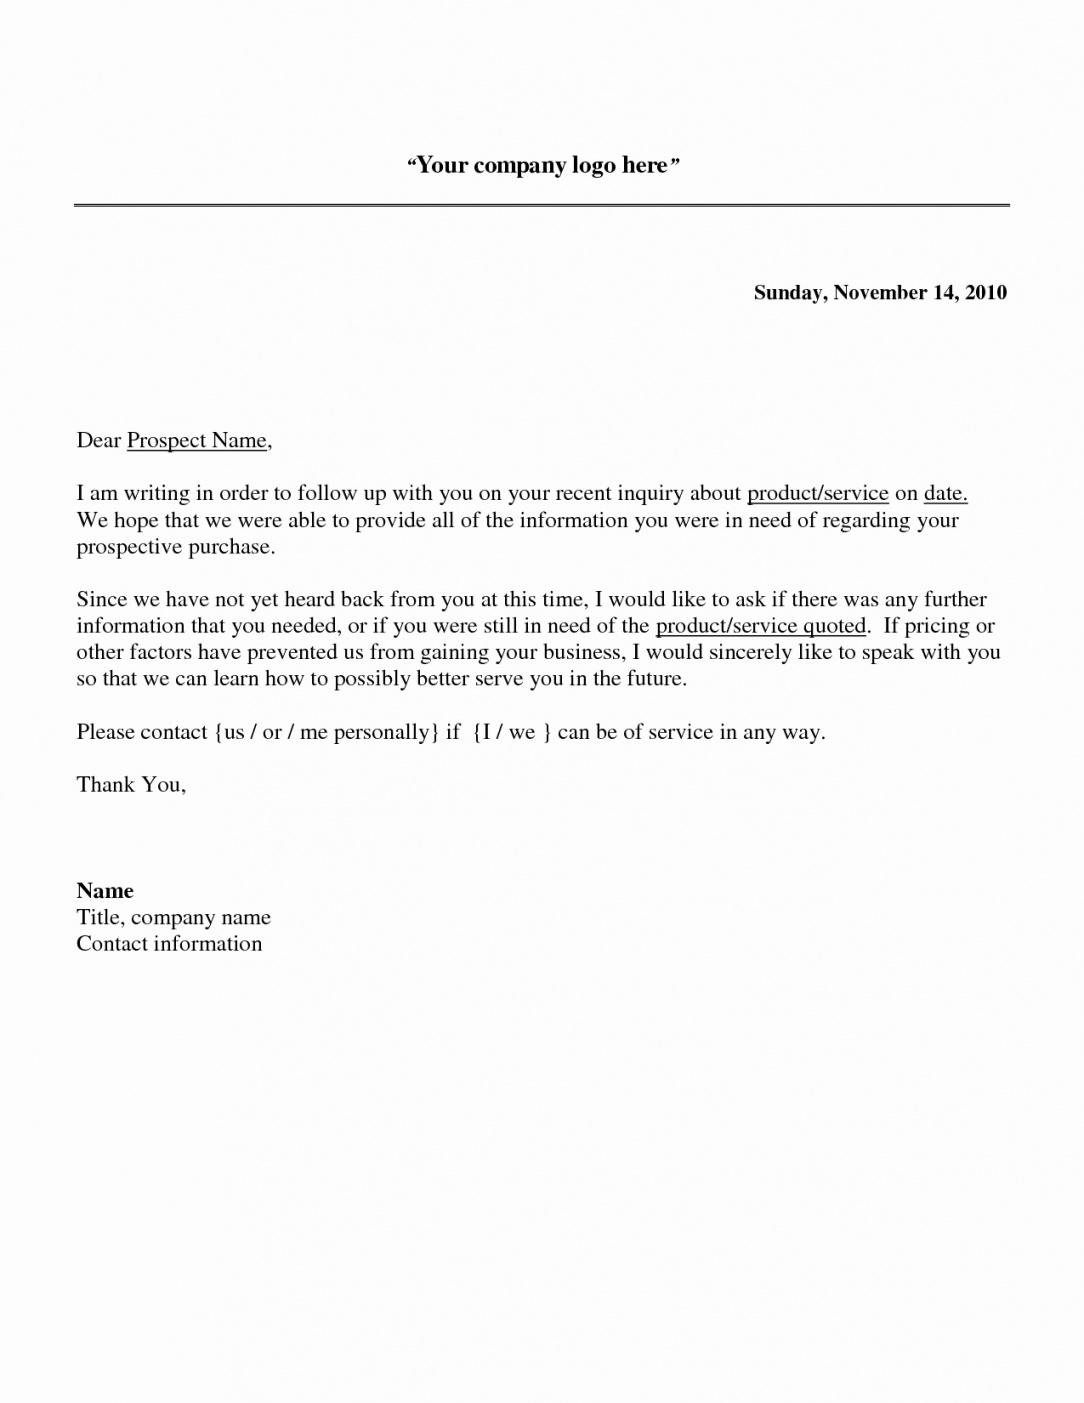 Professional Real Estate Prospecting Letter Template Word Sample